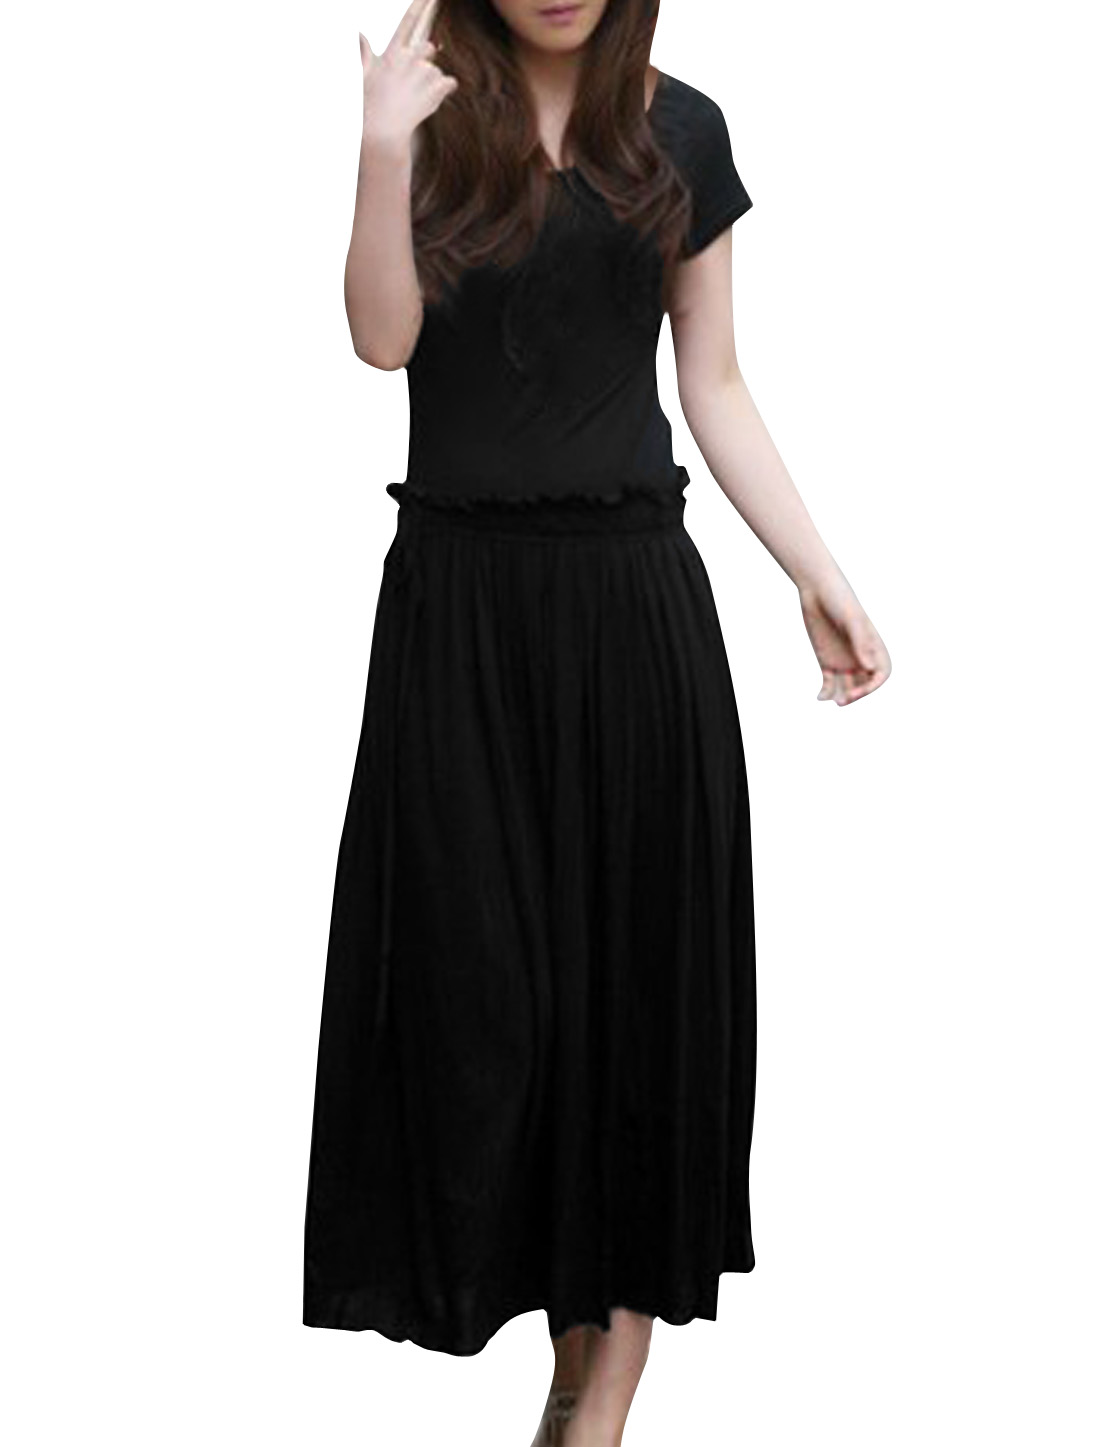 Women Stylish Ruffles Decor Drawstring Waist Black Mid-Calf Dress L